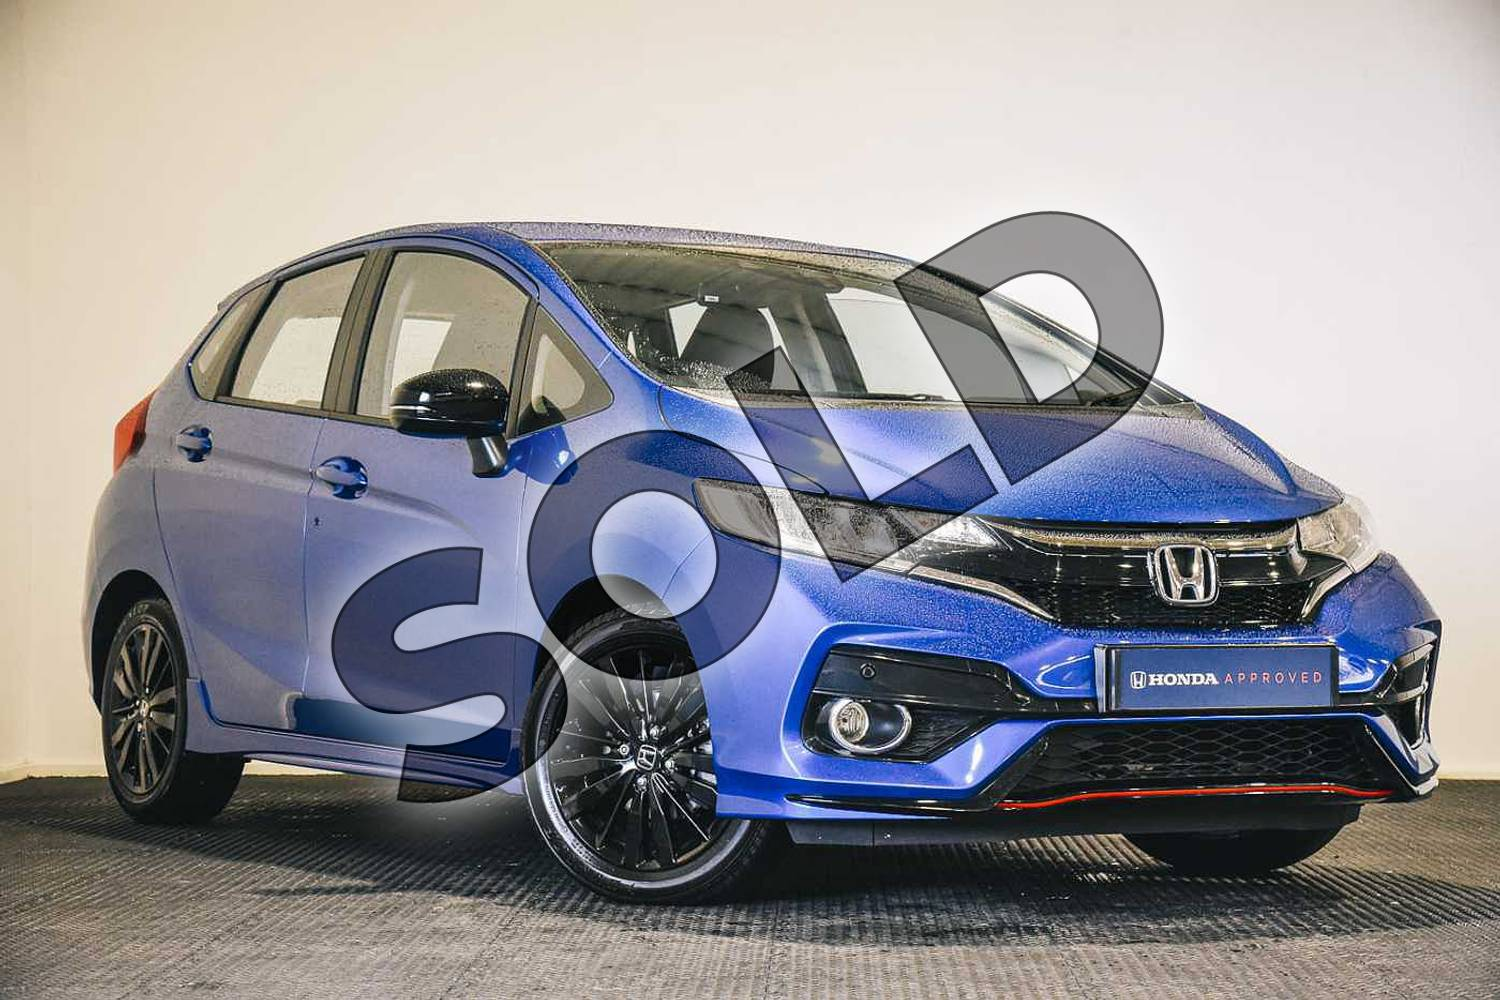 2019 Honda Jazz Hatchback 1.5 i-VTEC Sport Navi 5dr in Brilliant Sporty Blue at Listers Honda Stratford-upon-Avon